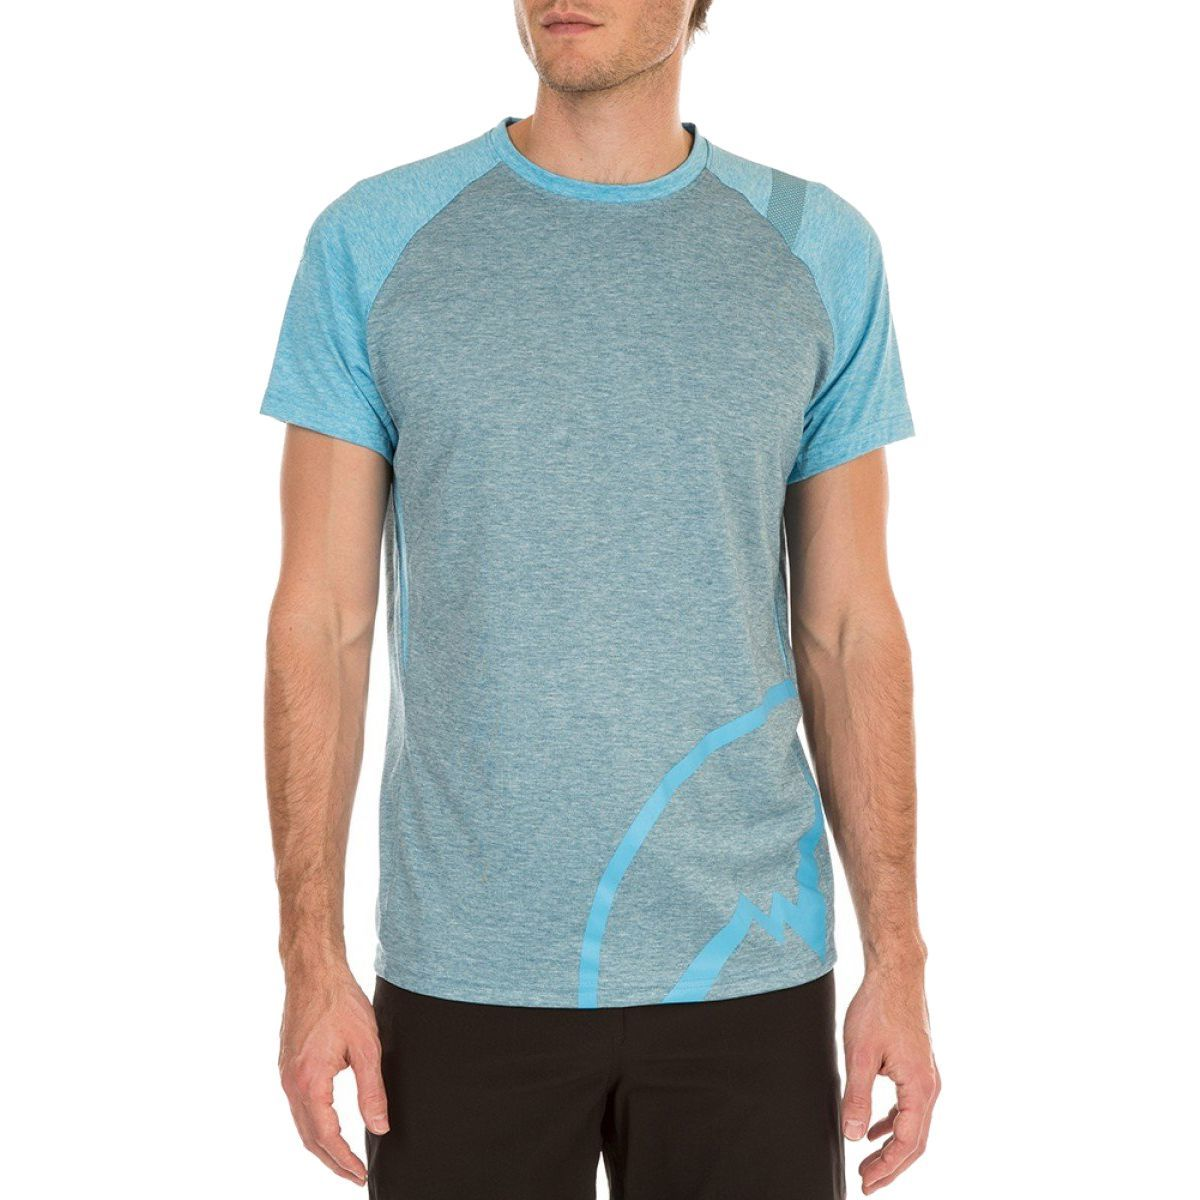 La Sportiva Santiago Short-Sleeve T-Shirt - Men's